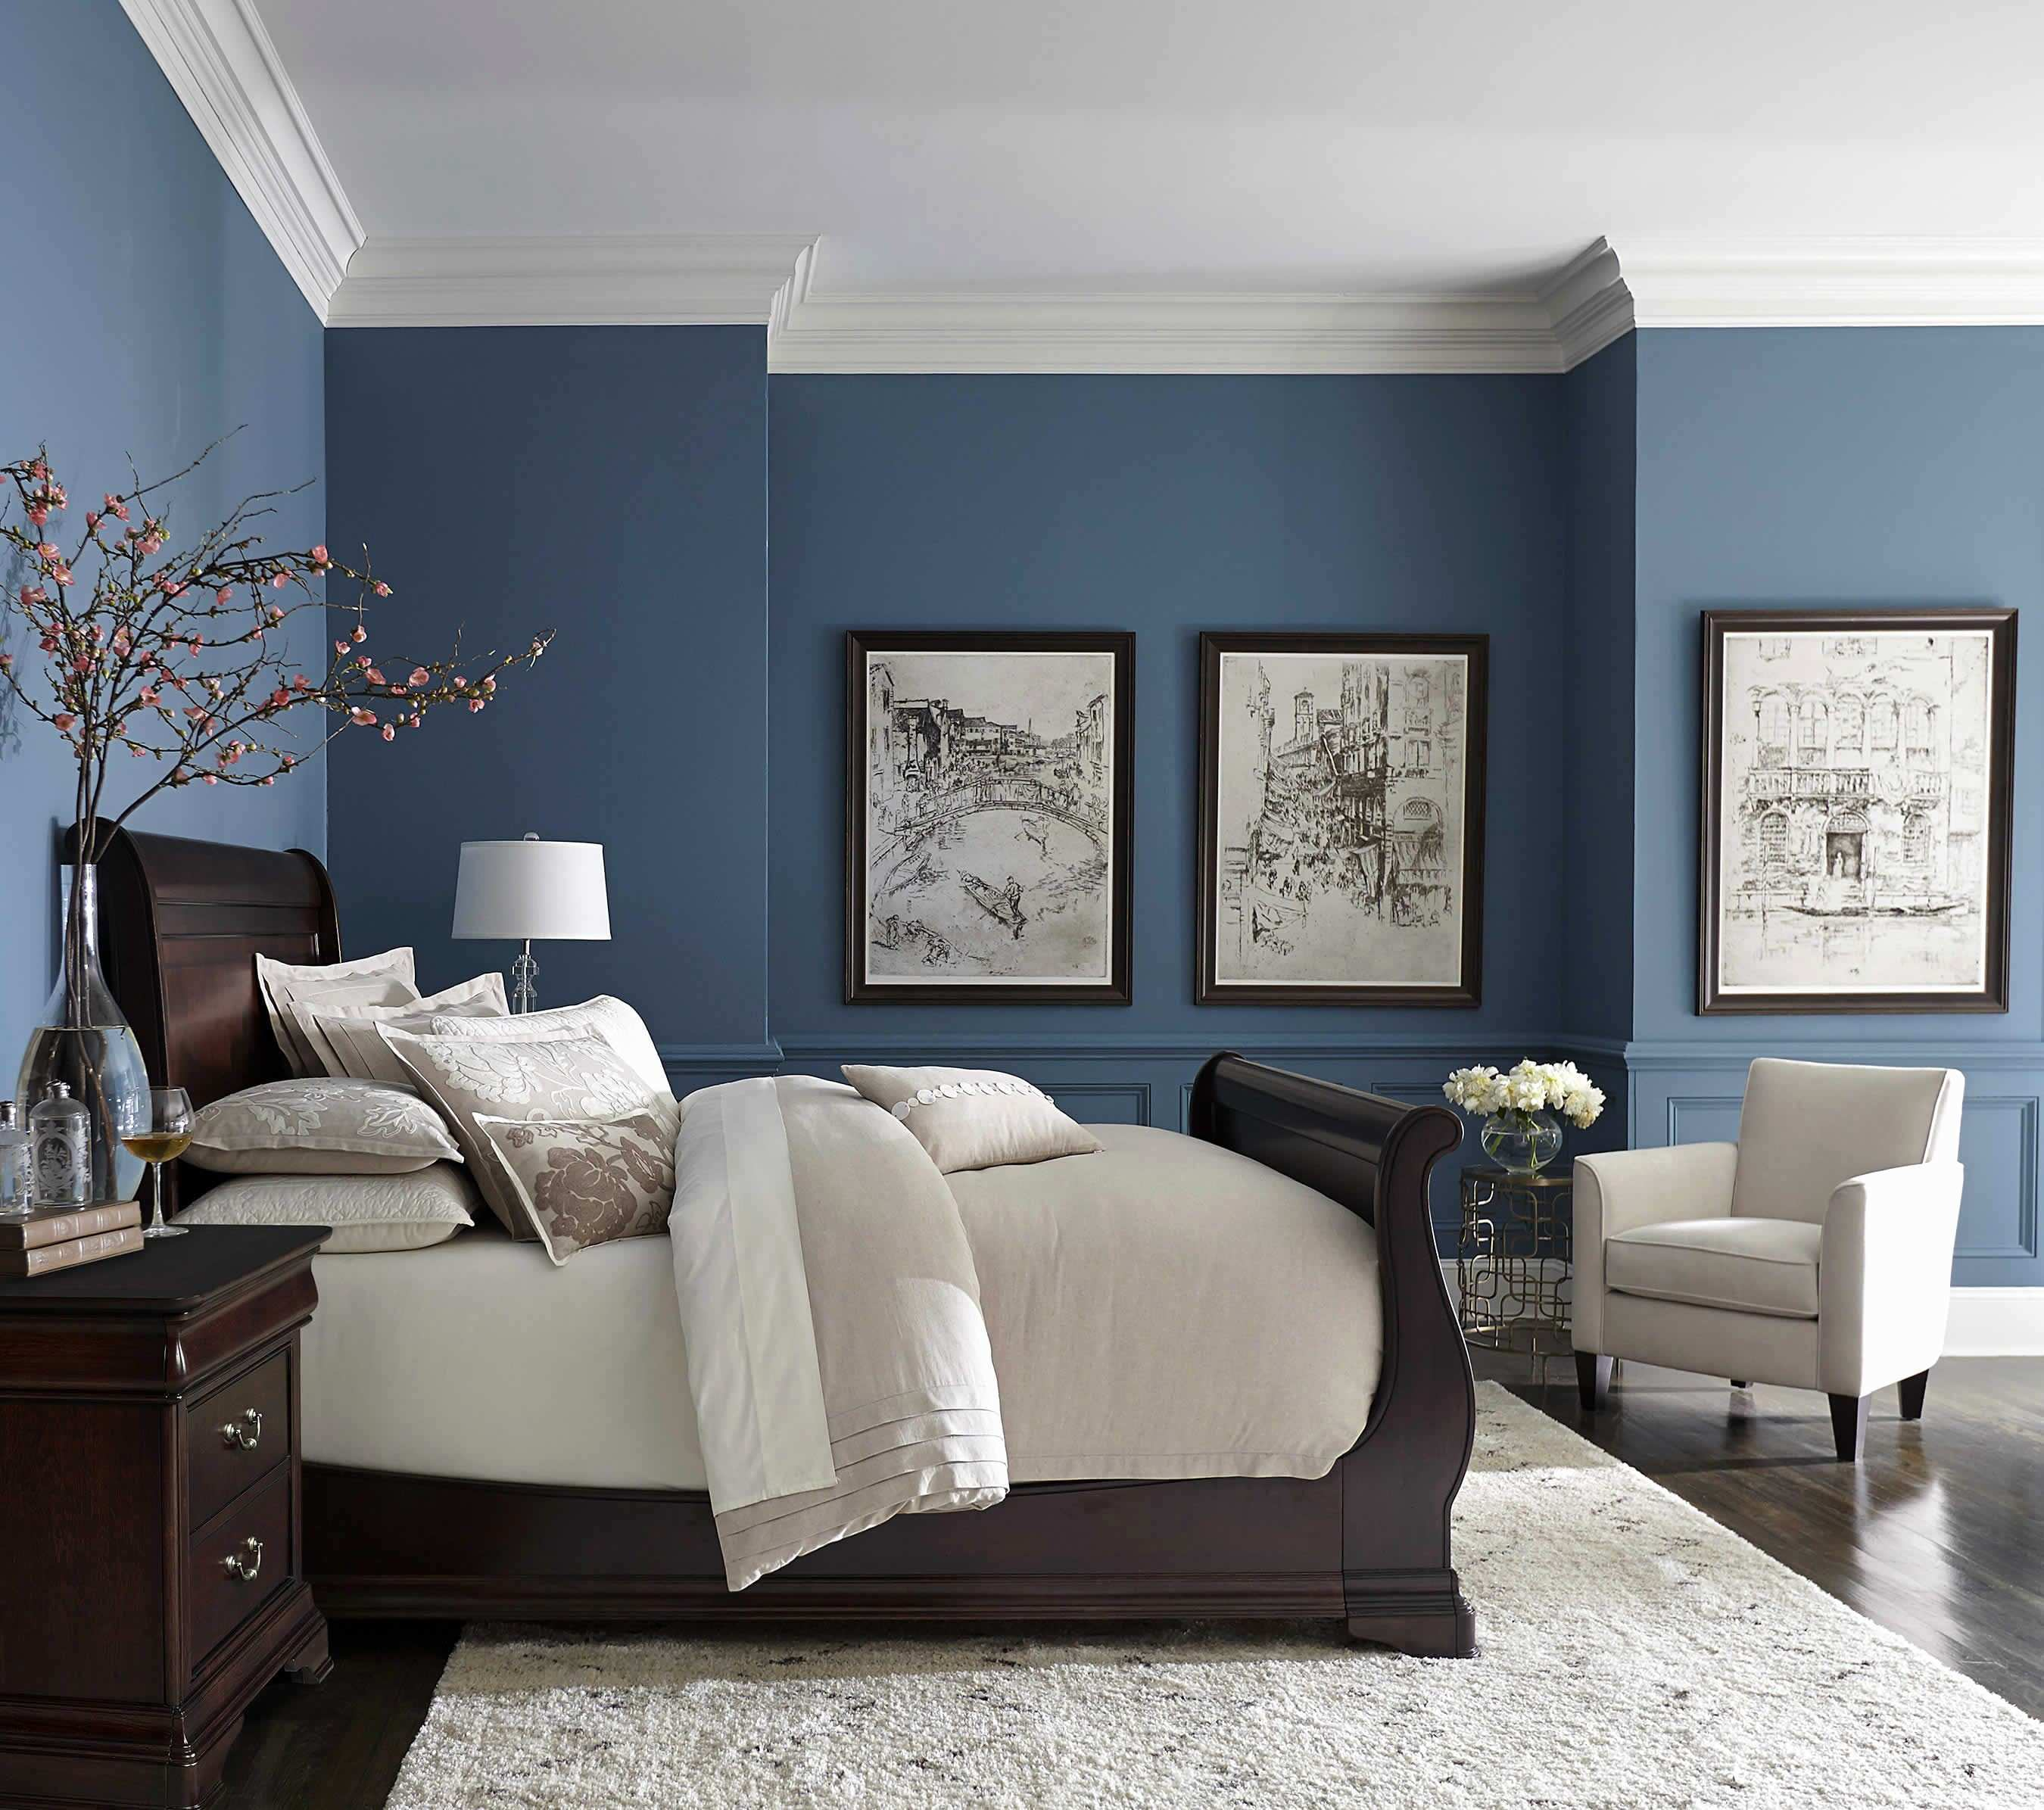 43 Awesome Blue Wall Decals